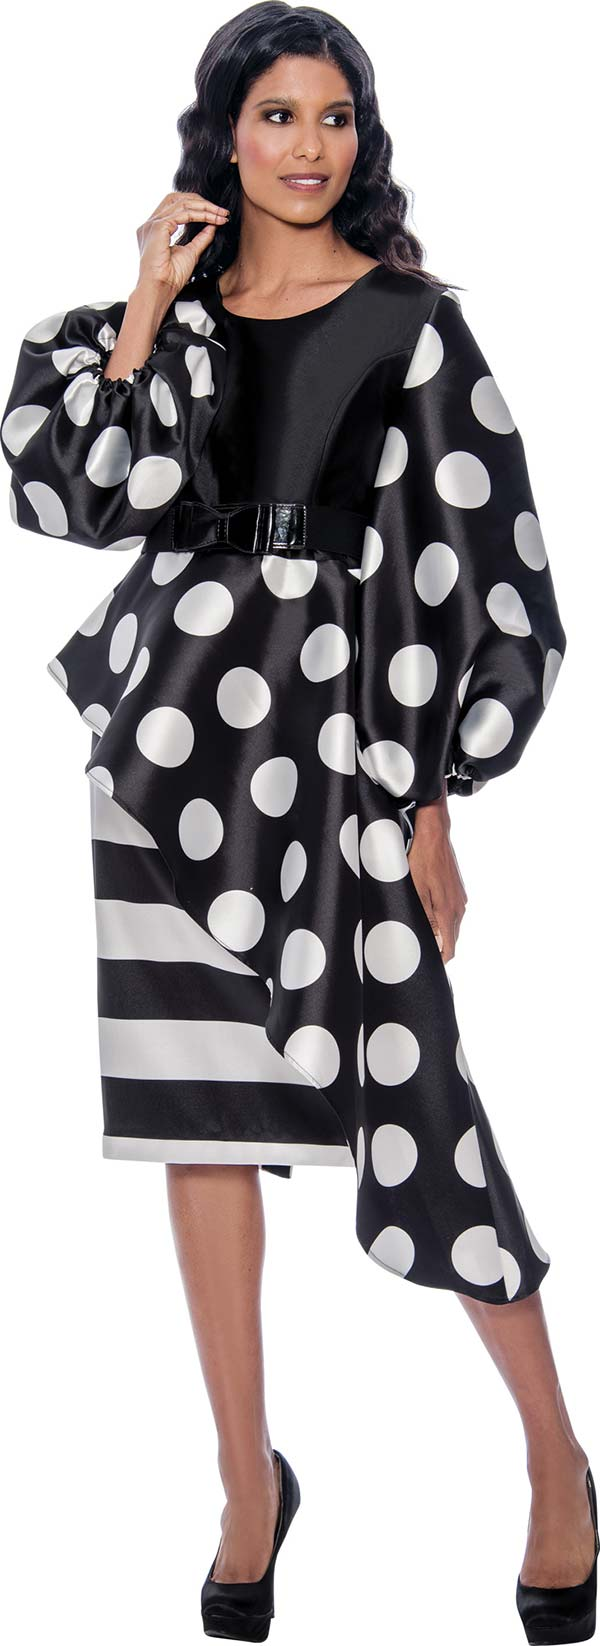 Nubiano Dress 2521-Black/White - Church Suits For Less